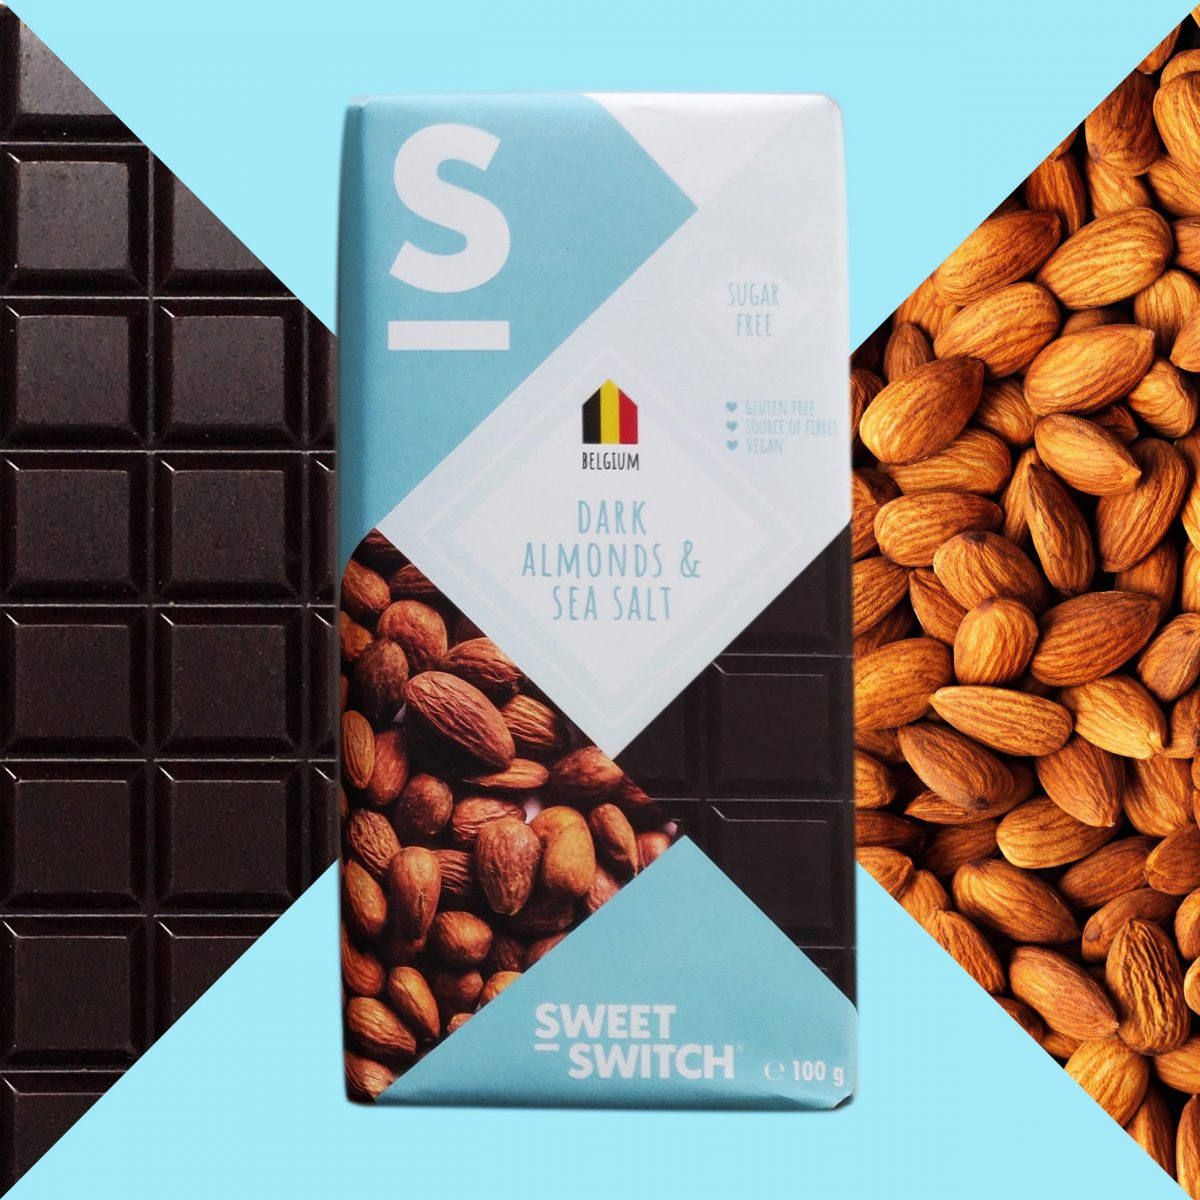 SWEET-SWITCH dark + almonds & sea salt